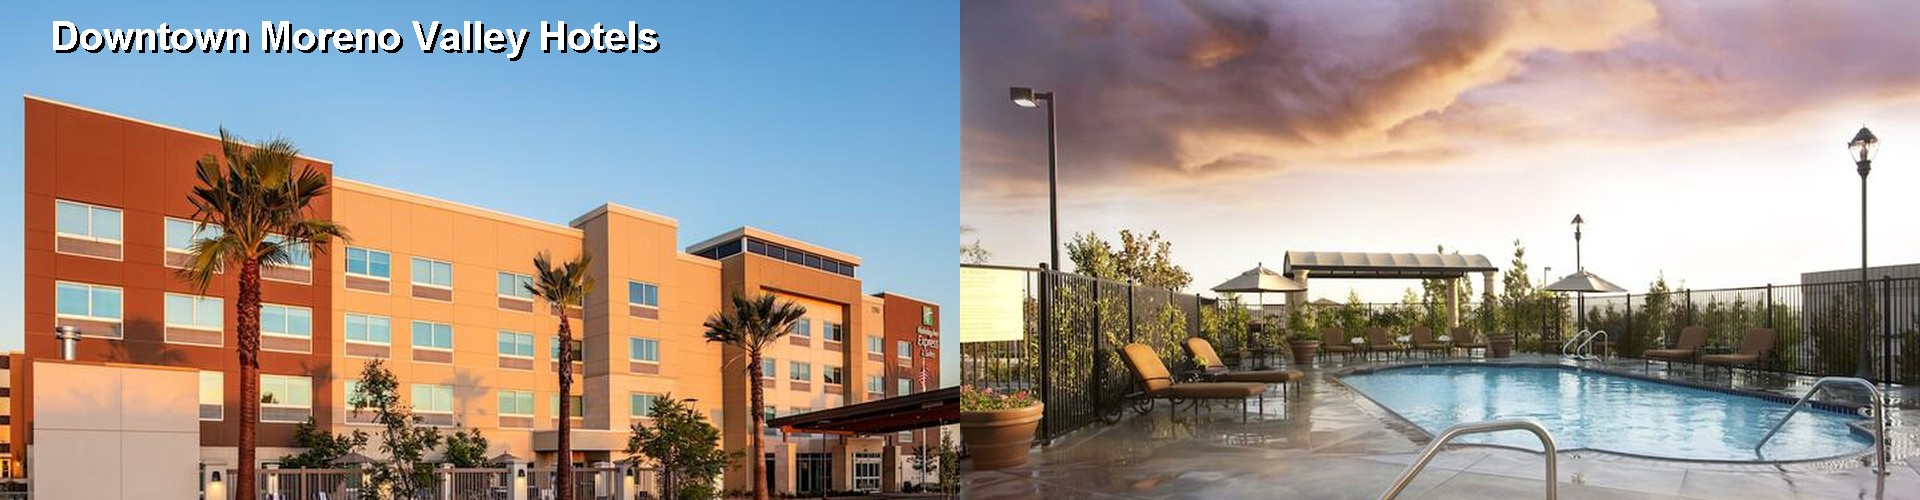 38 hotels near downtown moreno valley ca for Zola motel zola predosa